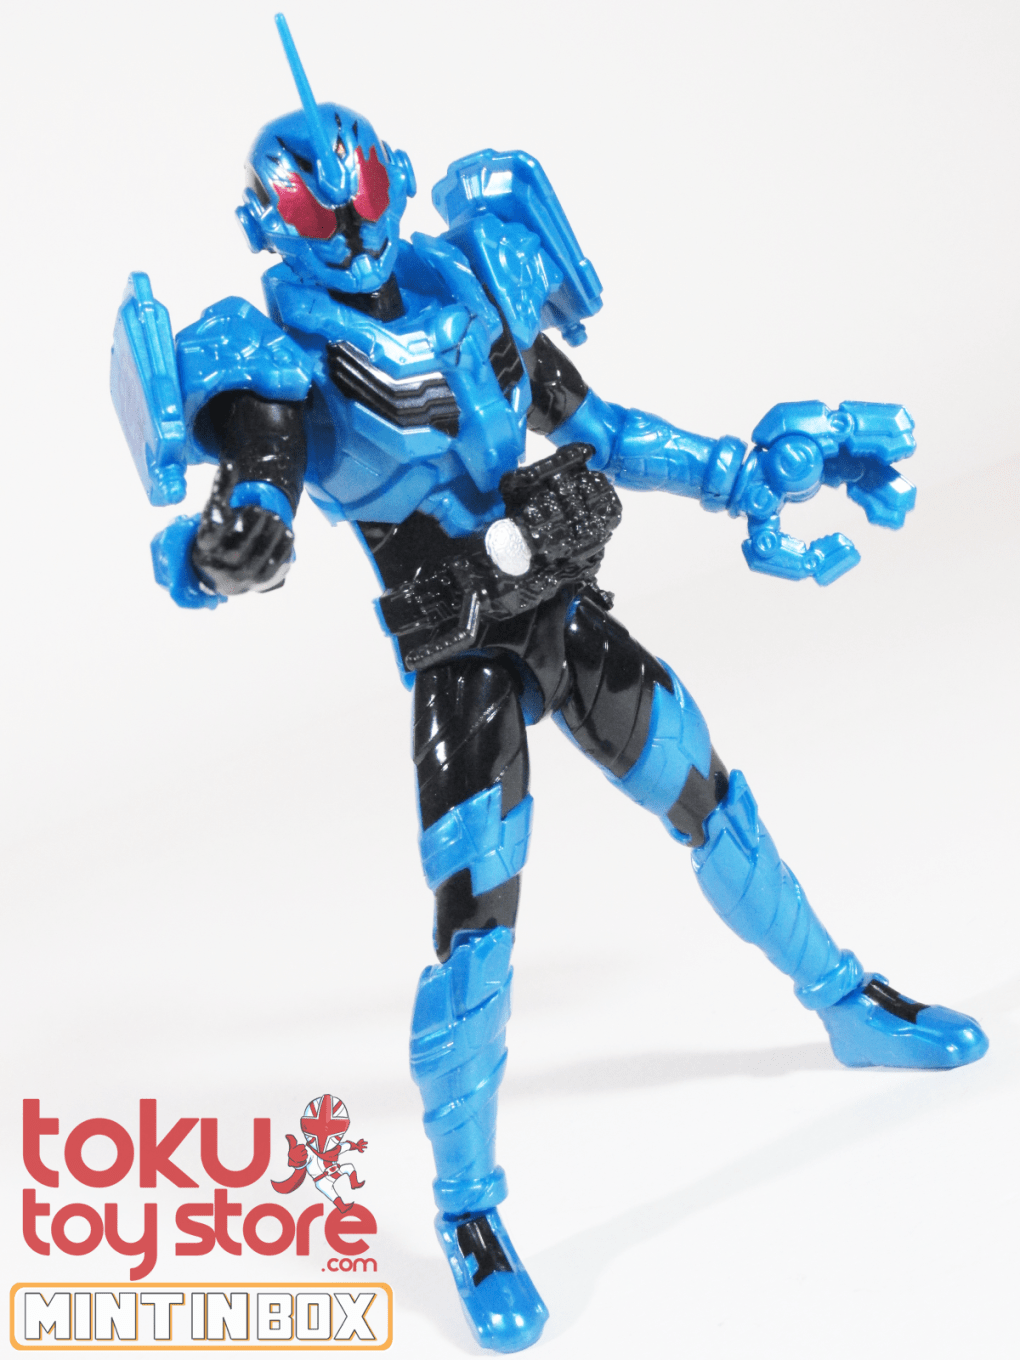 RKF_Grease Blizzard_Toku Toy Store (2)